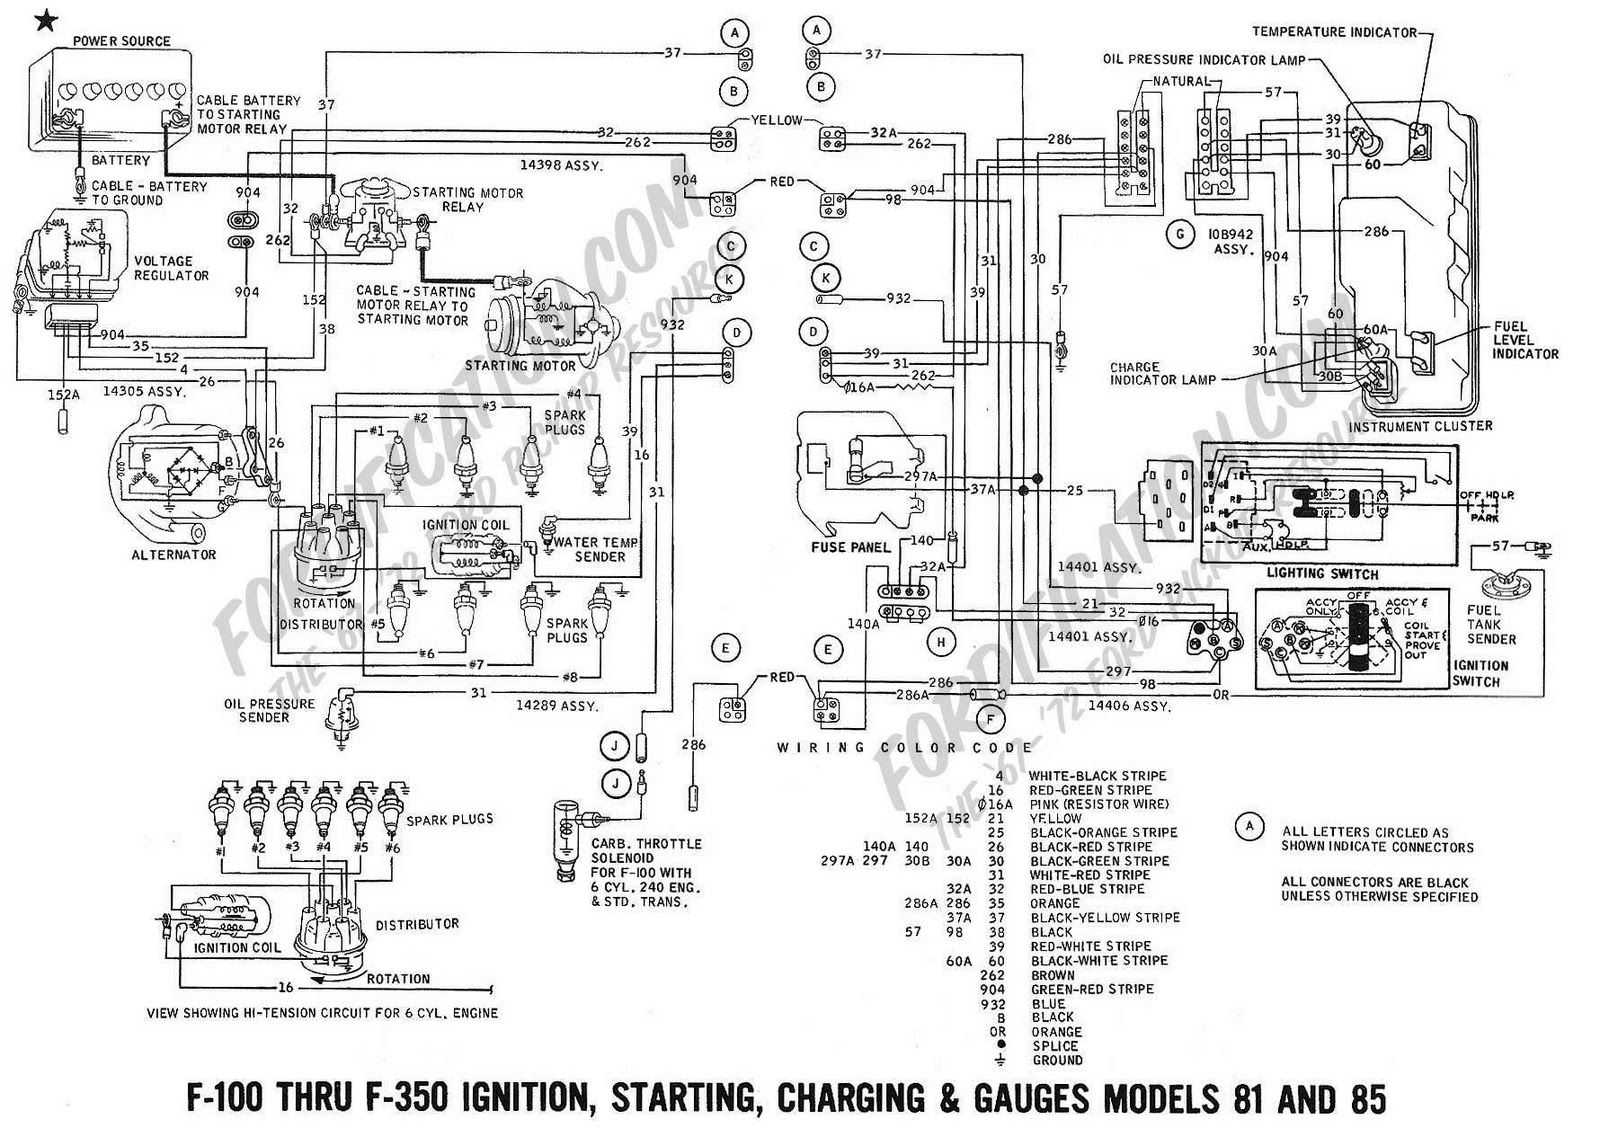 Stock Photo Ford Alternator Wiring Diagram Internal Regulator 1961 Ford Generator Wiring Diagram Data Wiring Diagrams Ford Fuel Diagram Diesel Trucks Ford Wire